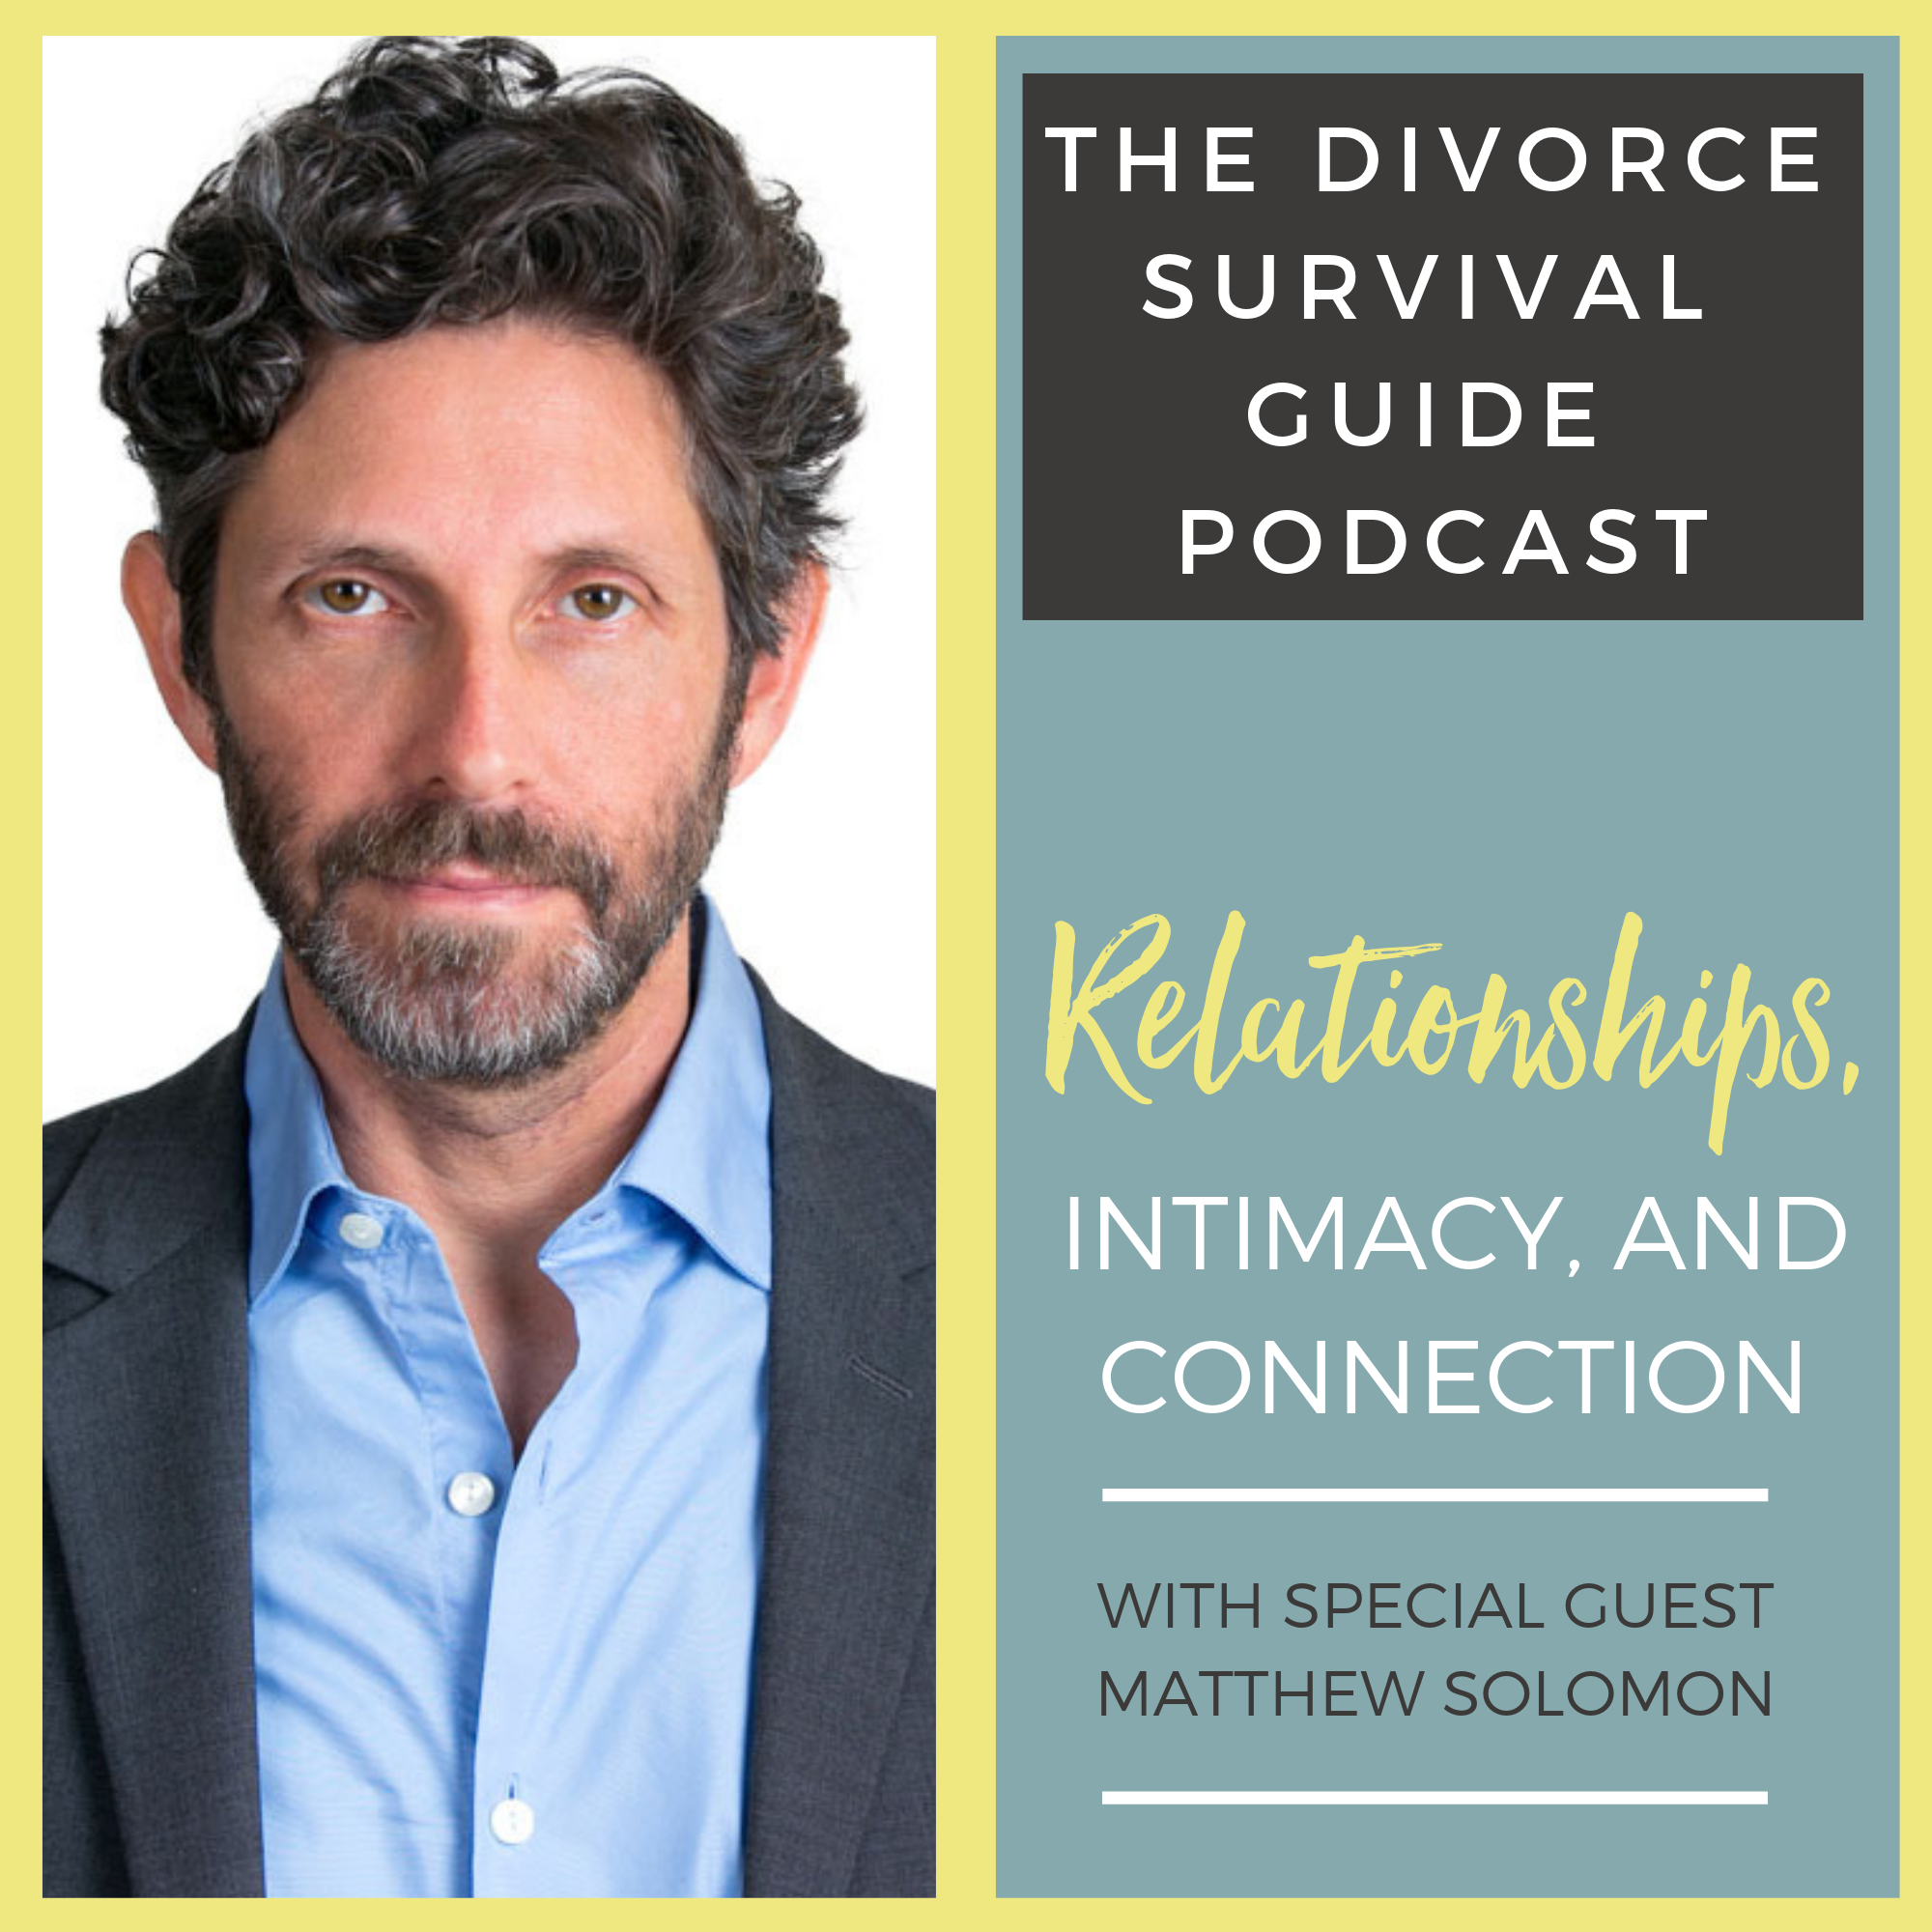 The Divorce Survival Guide Podcast - Relationships, Intimacy, and Connection with Matthew Solomon